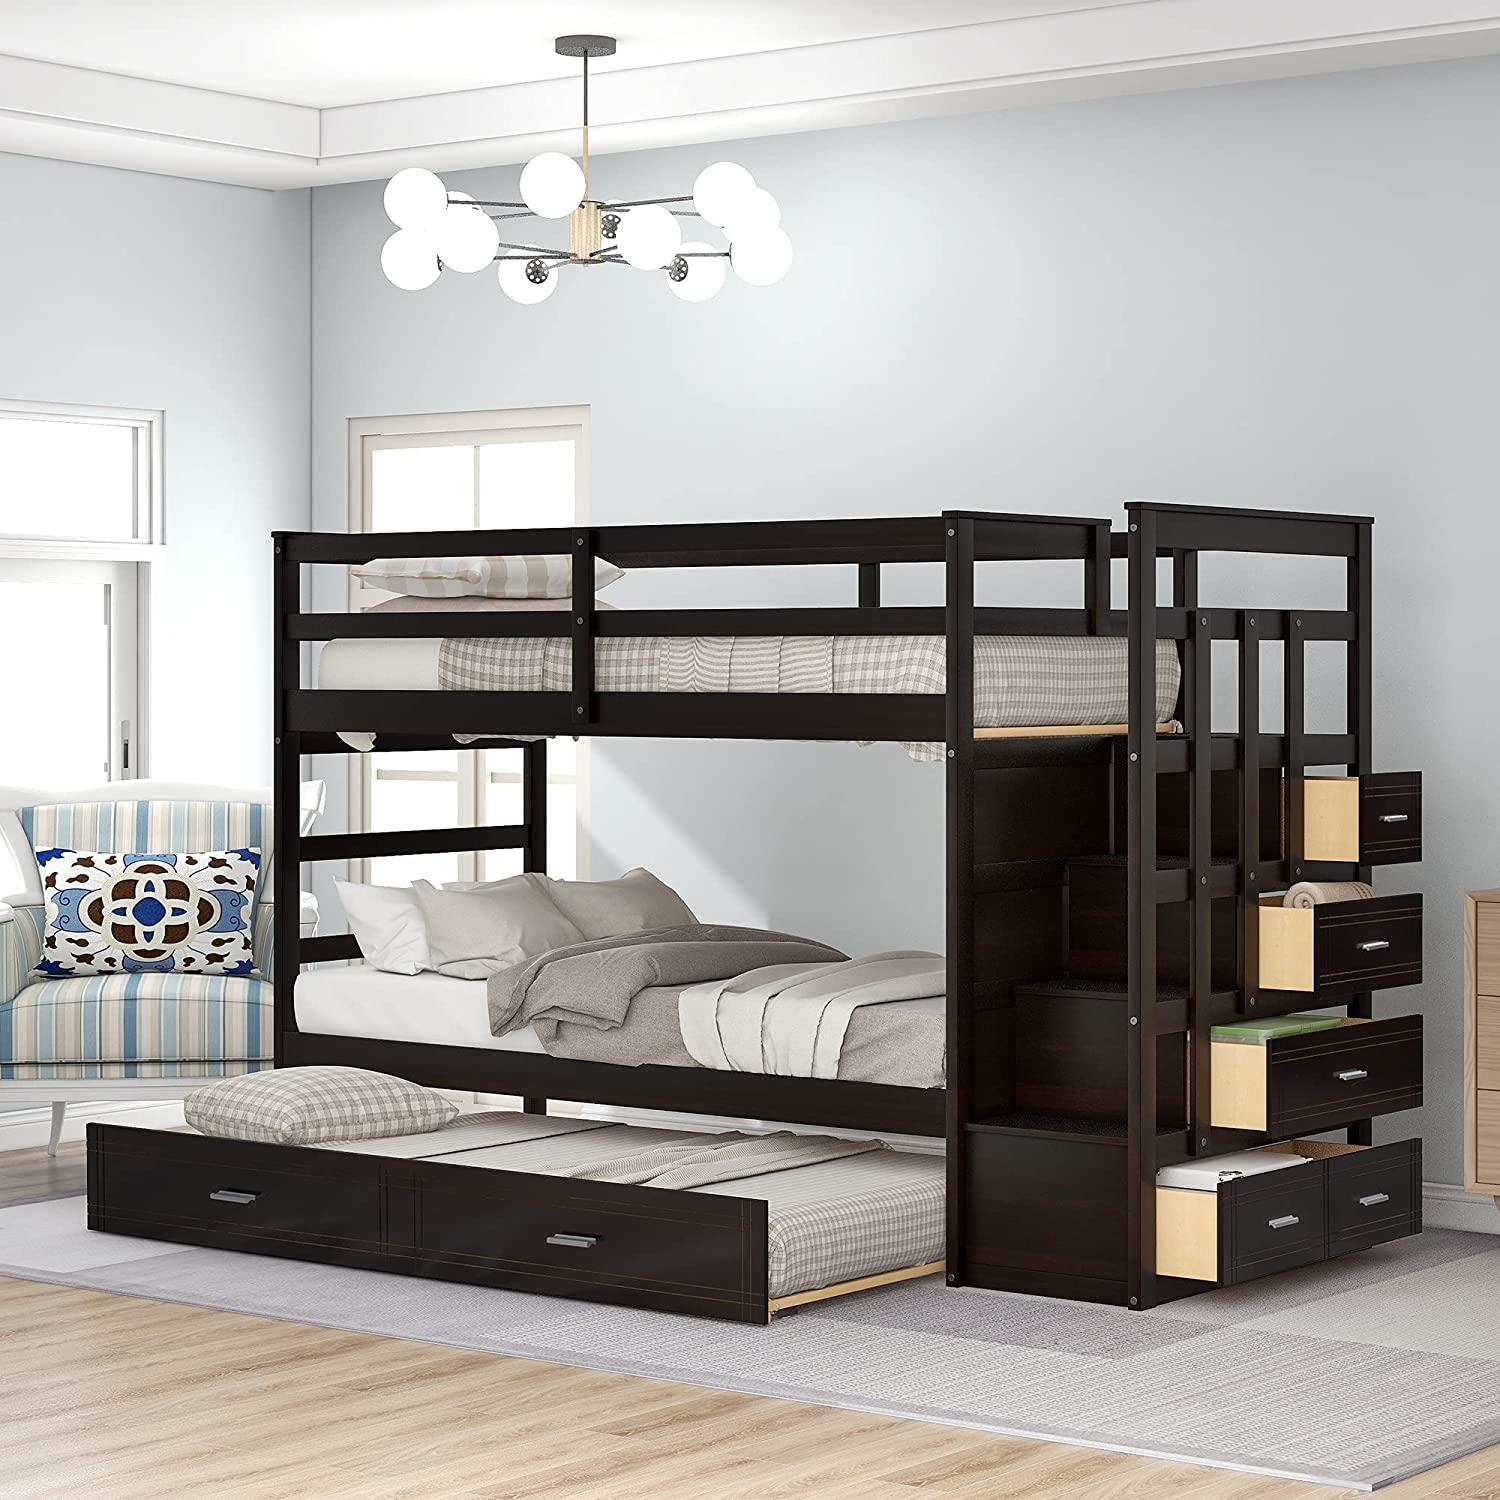 Buy Wood Twin Bunk Bed For Kids Twin Over Twin Bunk Bed Frame With Trundle And Staircase Espresso Online In Indonesia B07rjqjngp